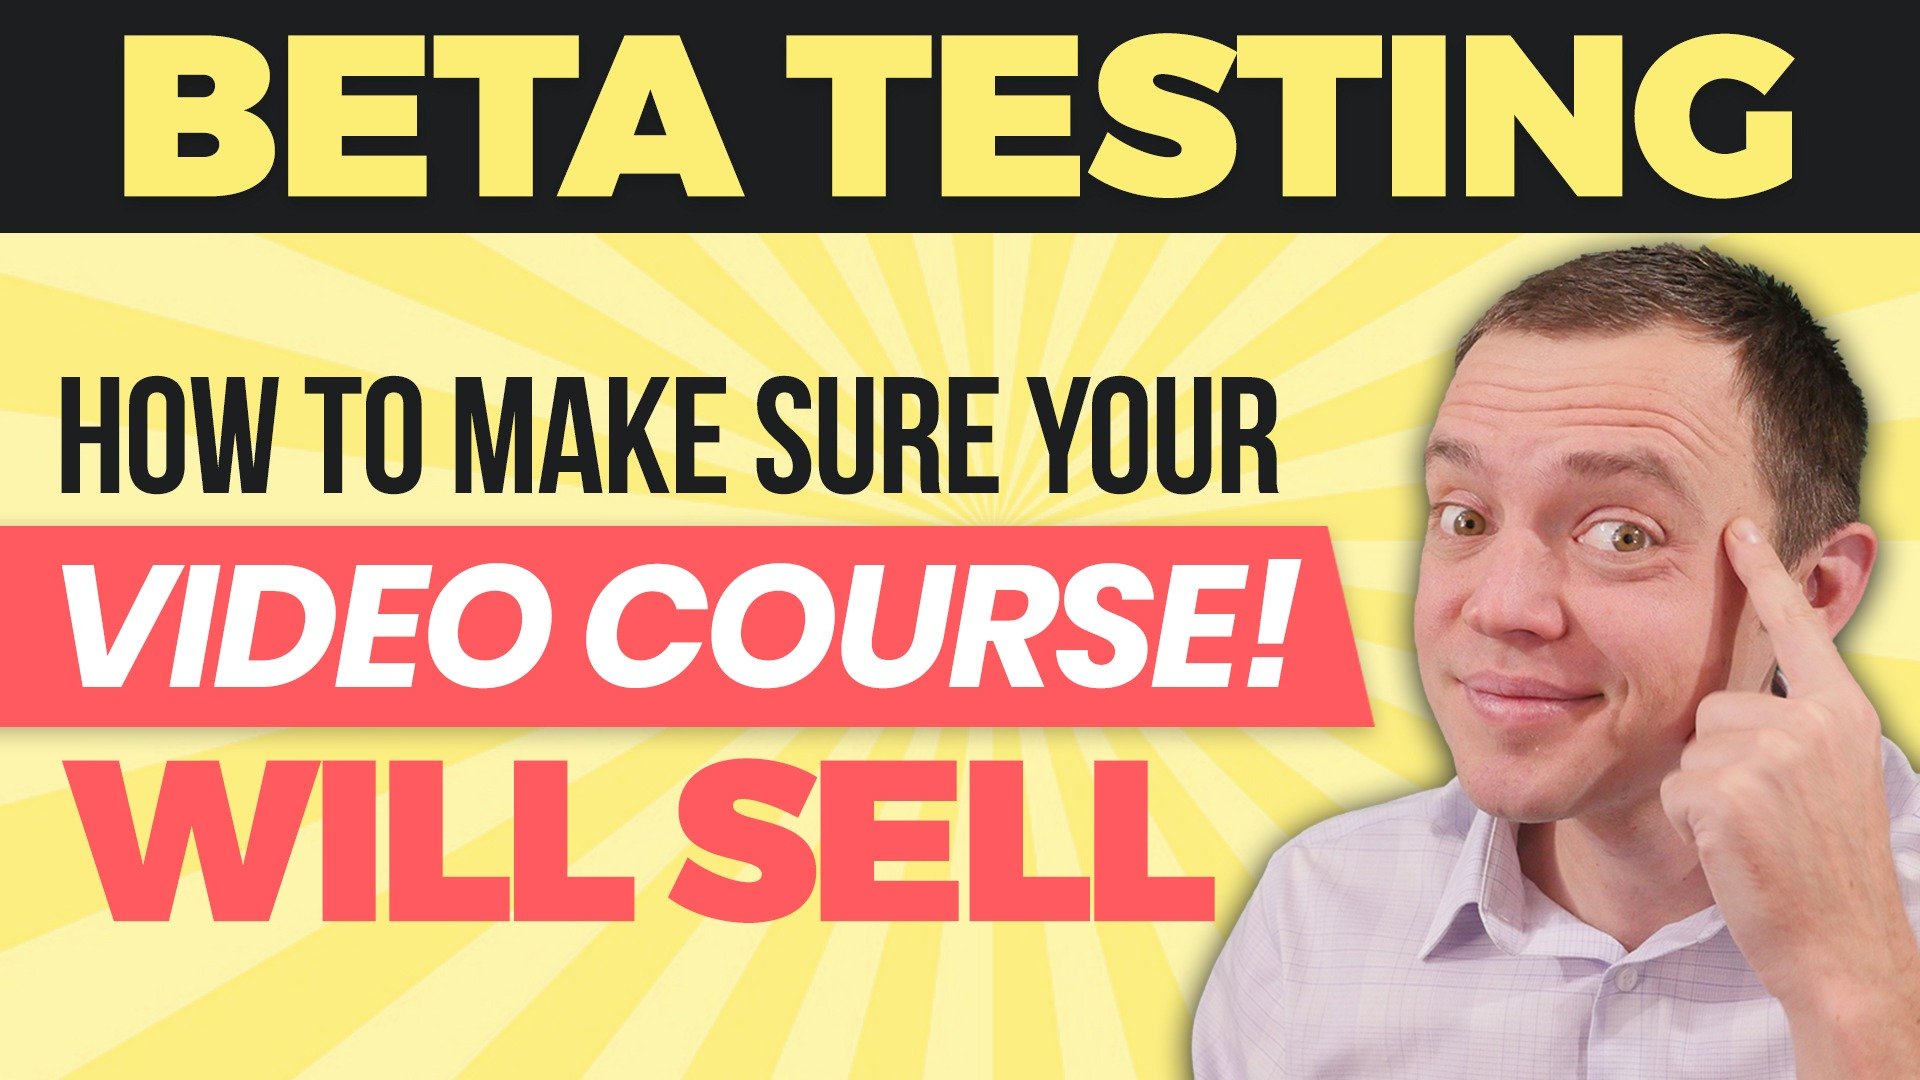 How to Beta Test and Make Sure Your Video Course will SELL when You Launch it!